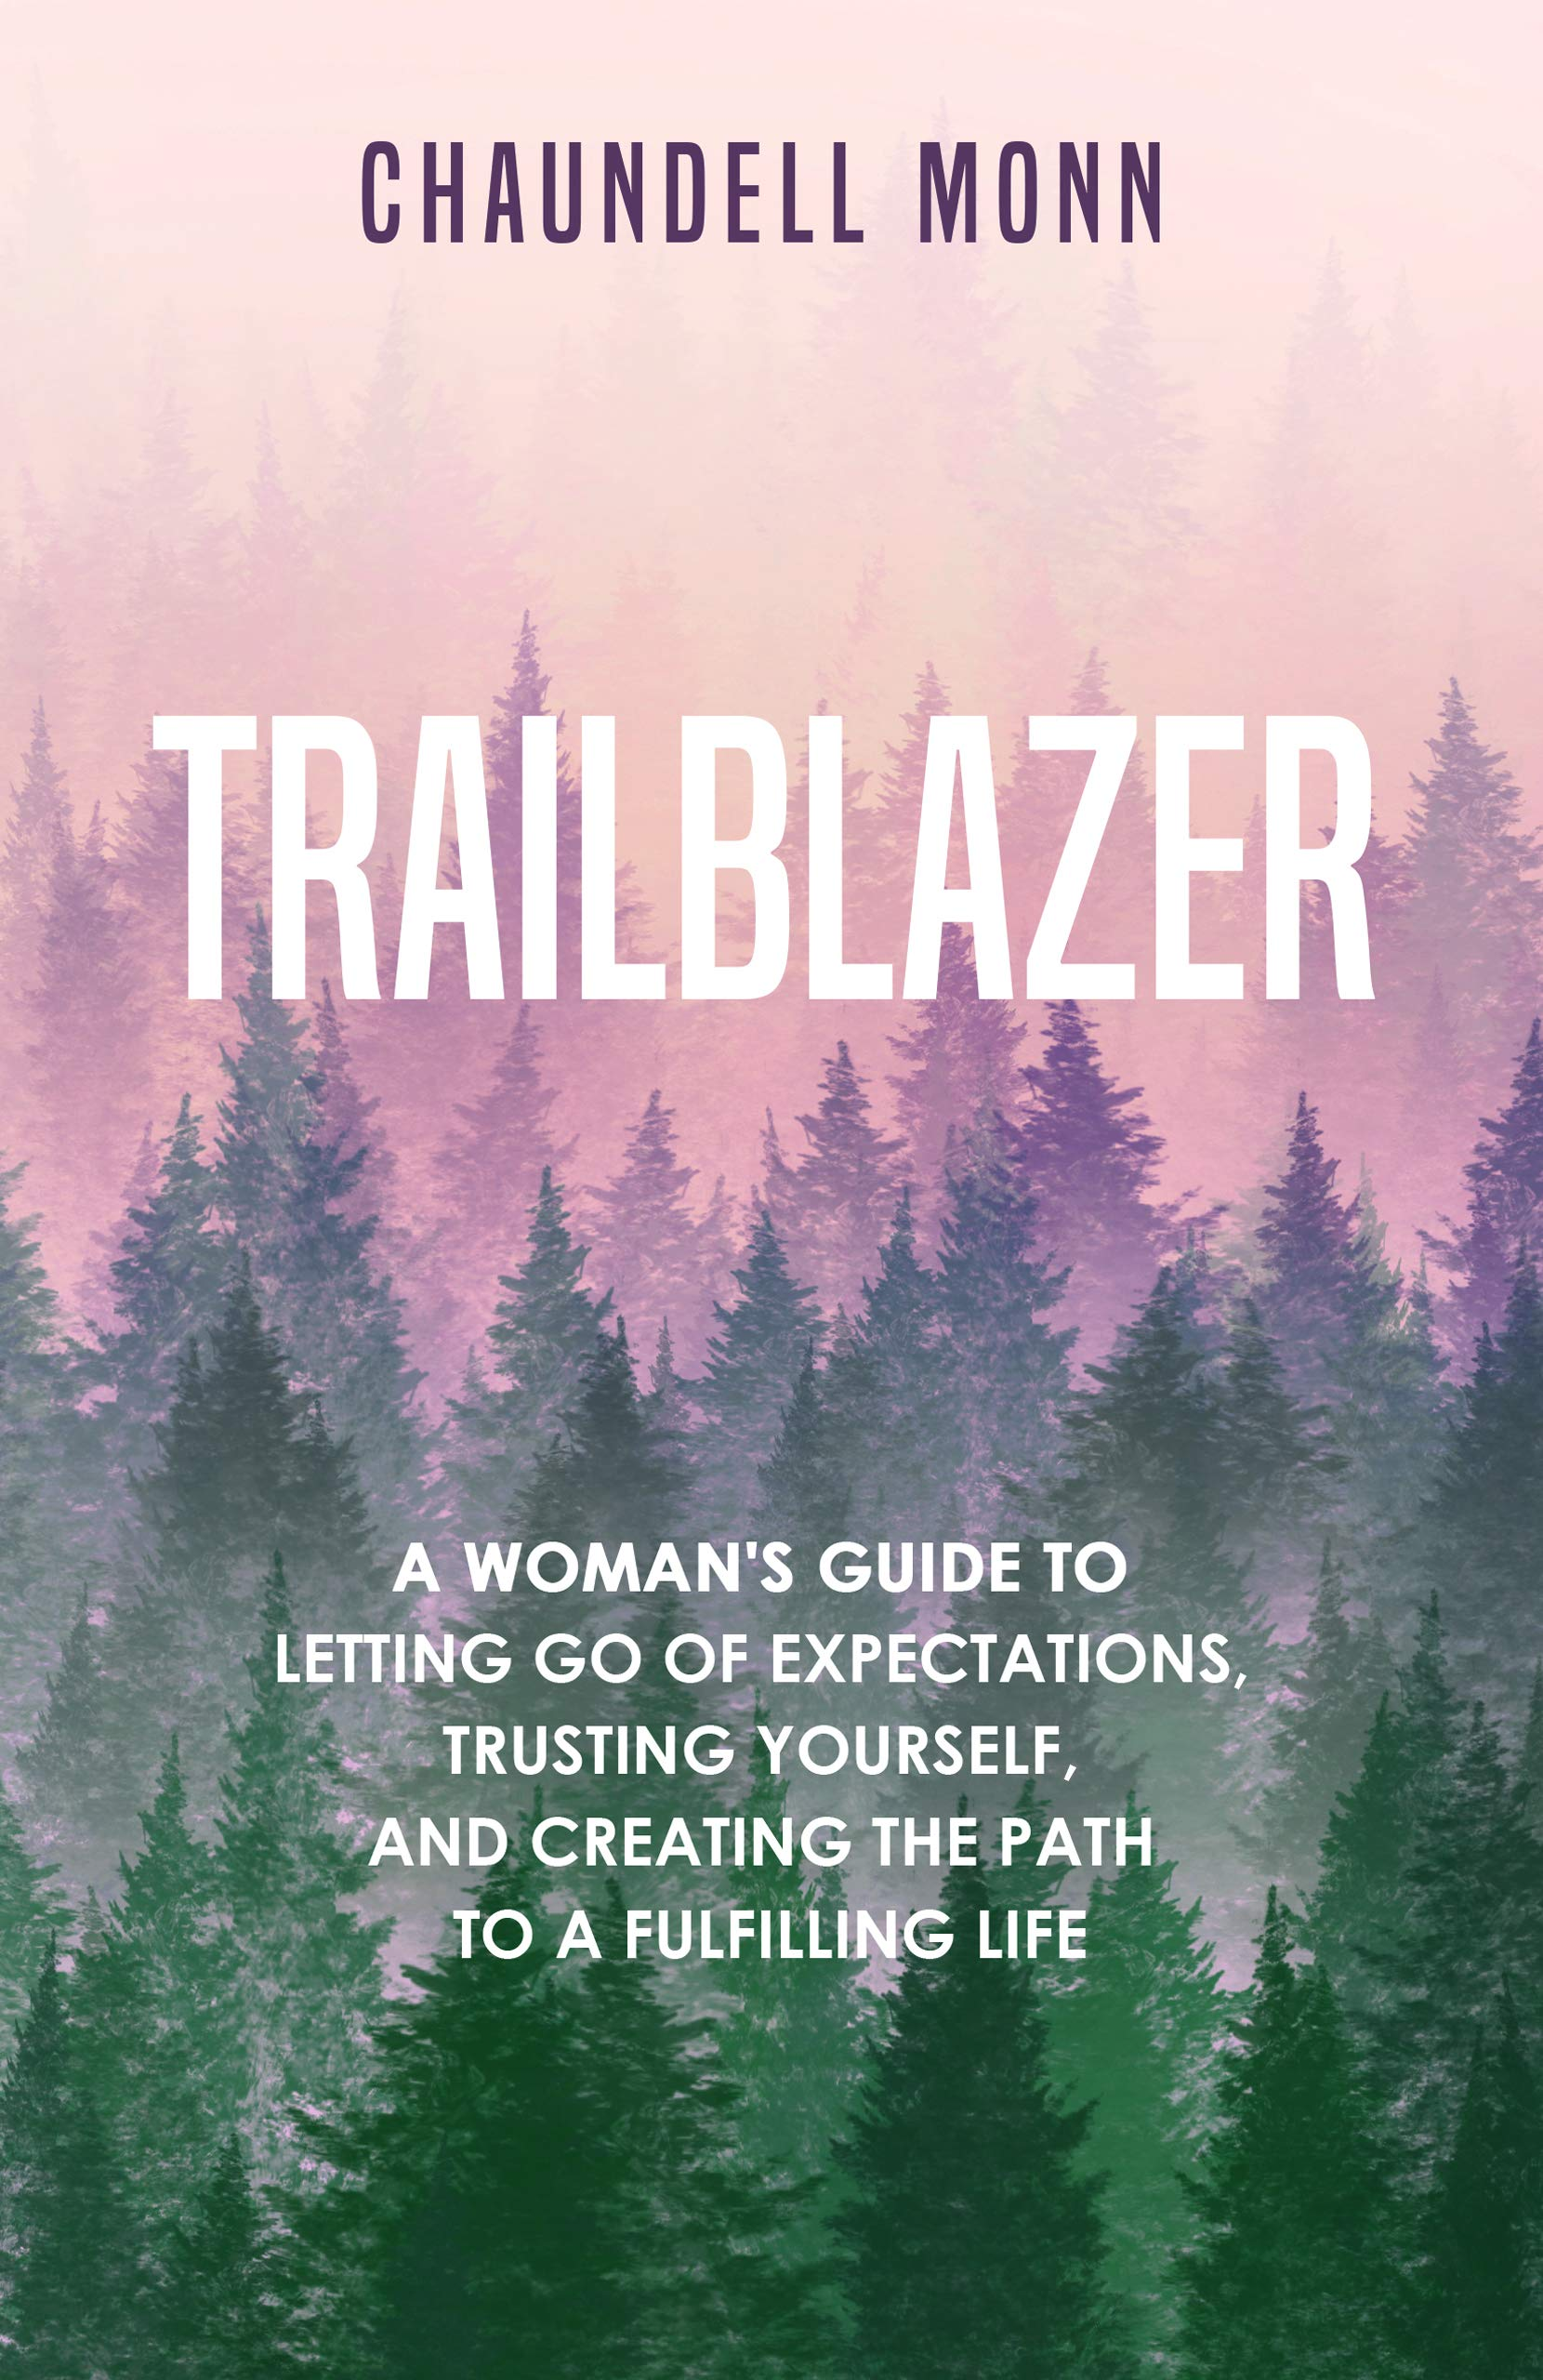 Trailblazer: A Woman's Guide to Letting Go of Expectations, Trusting Yourself, and Creating the Path to a Fulfilling Life